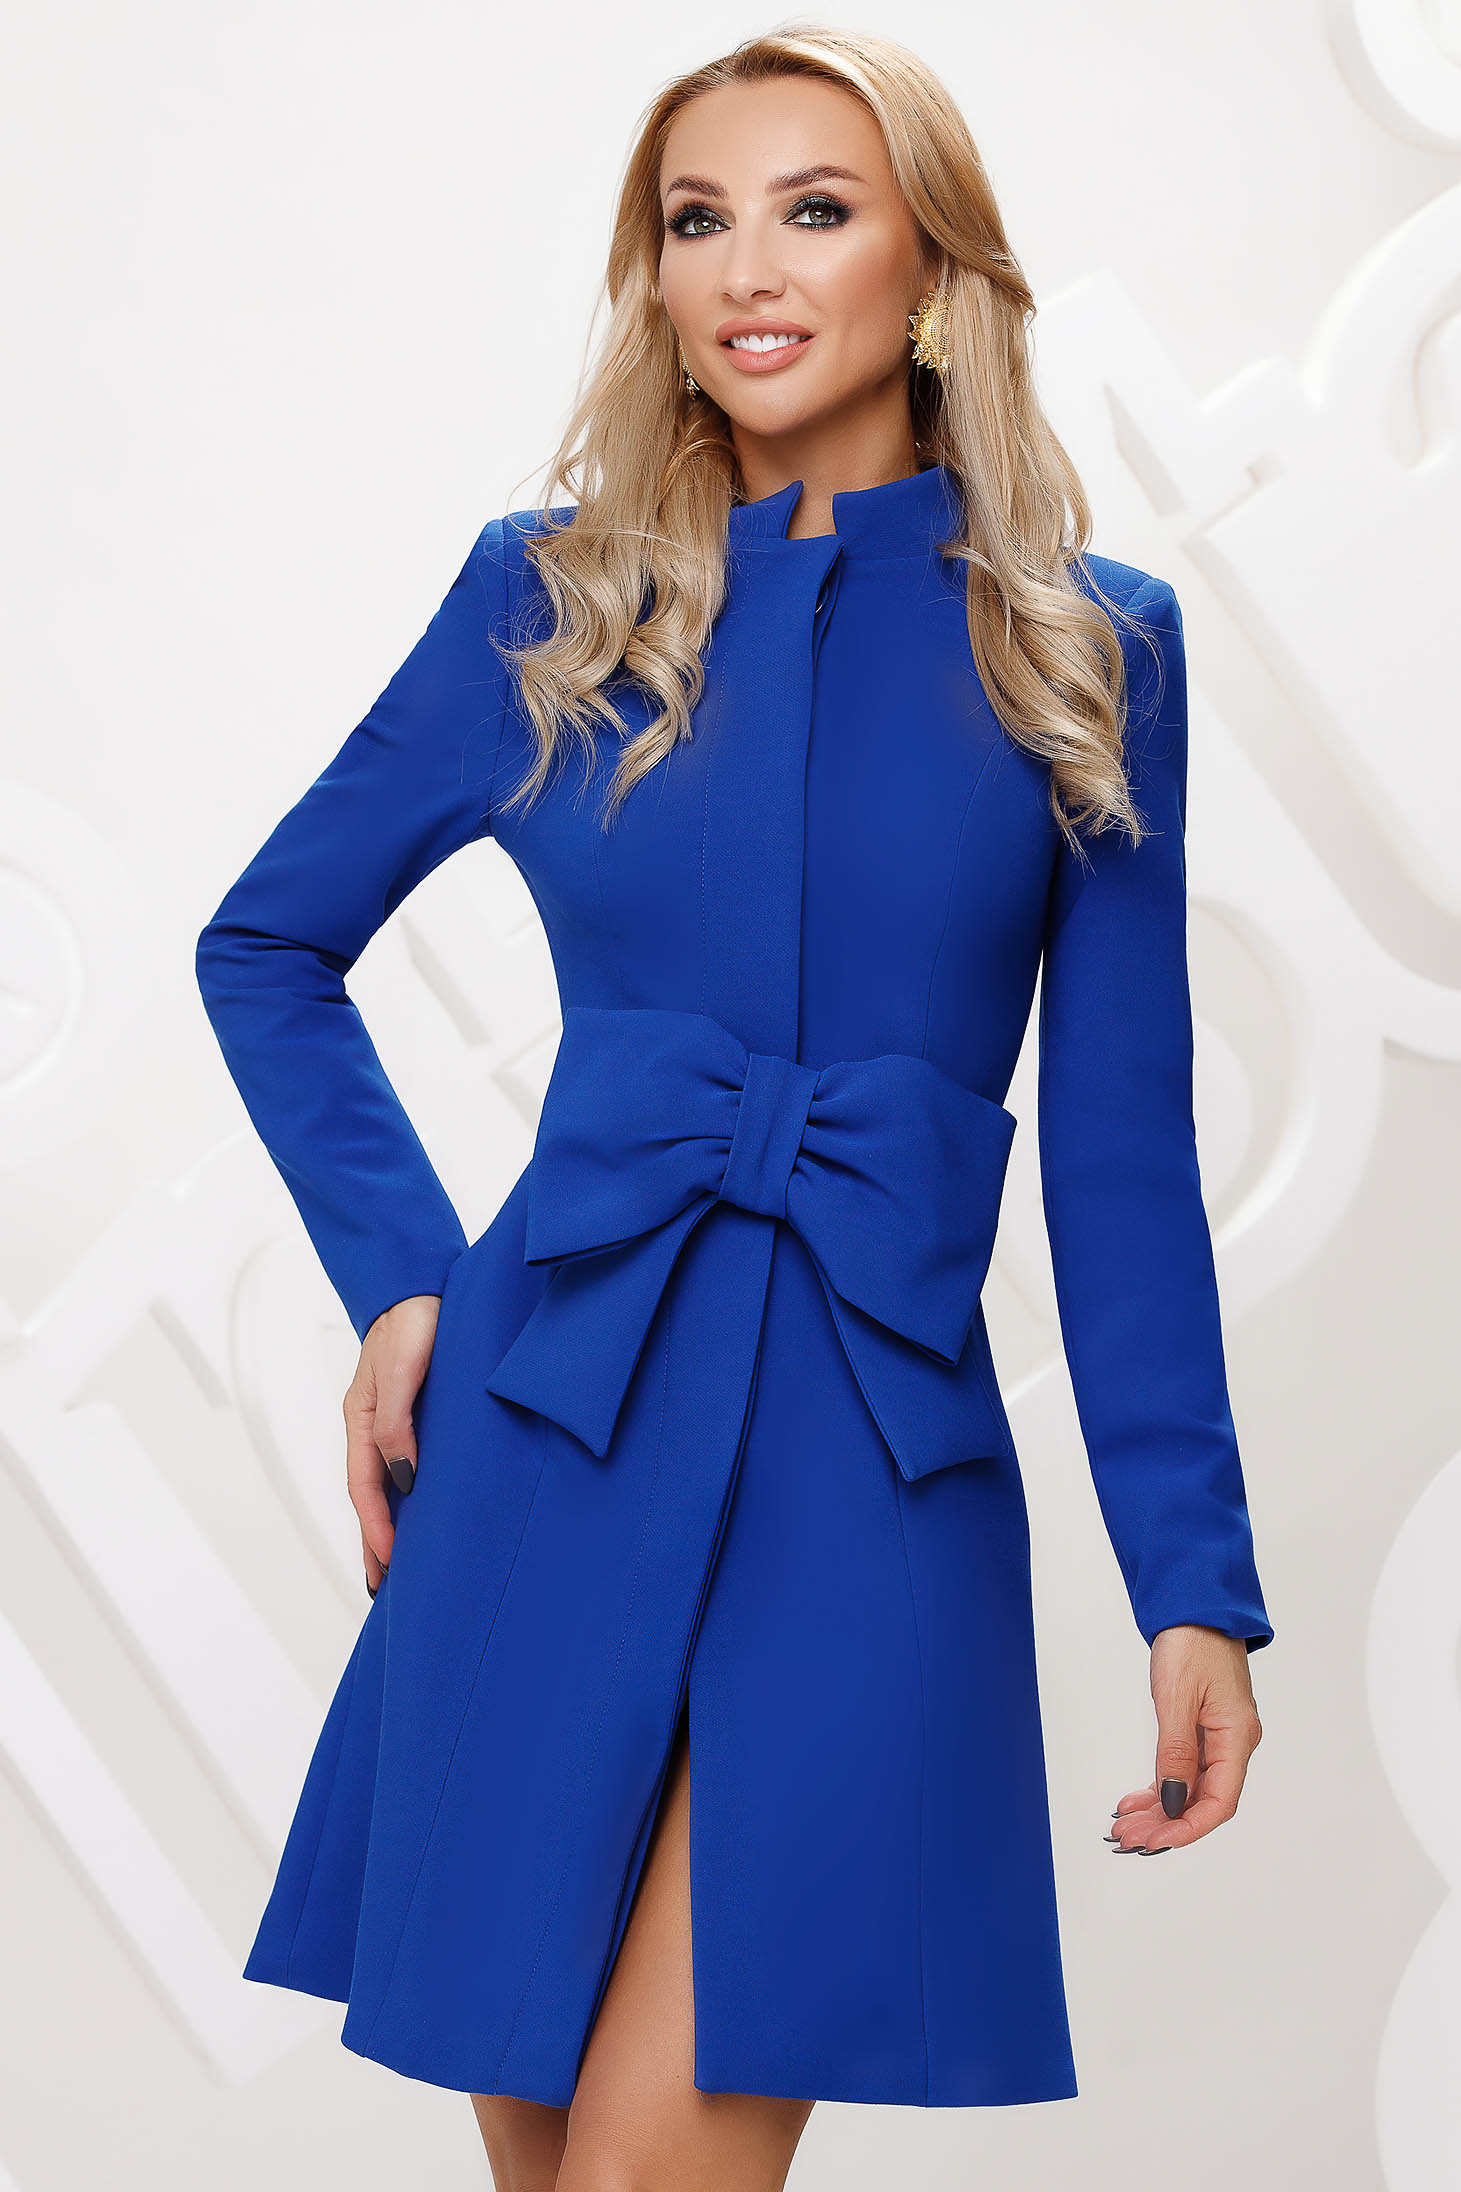 Blue trenchcoat tented short cut elegant accessorized with tied waistband bow accessory